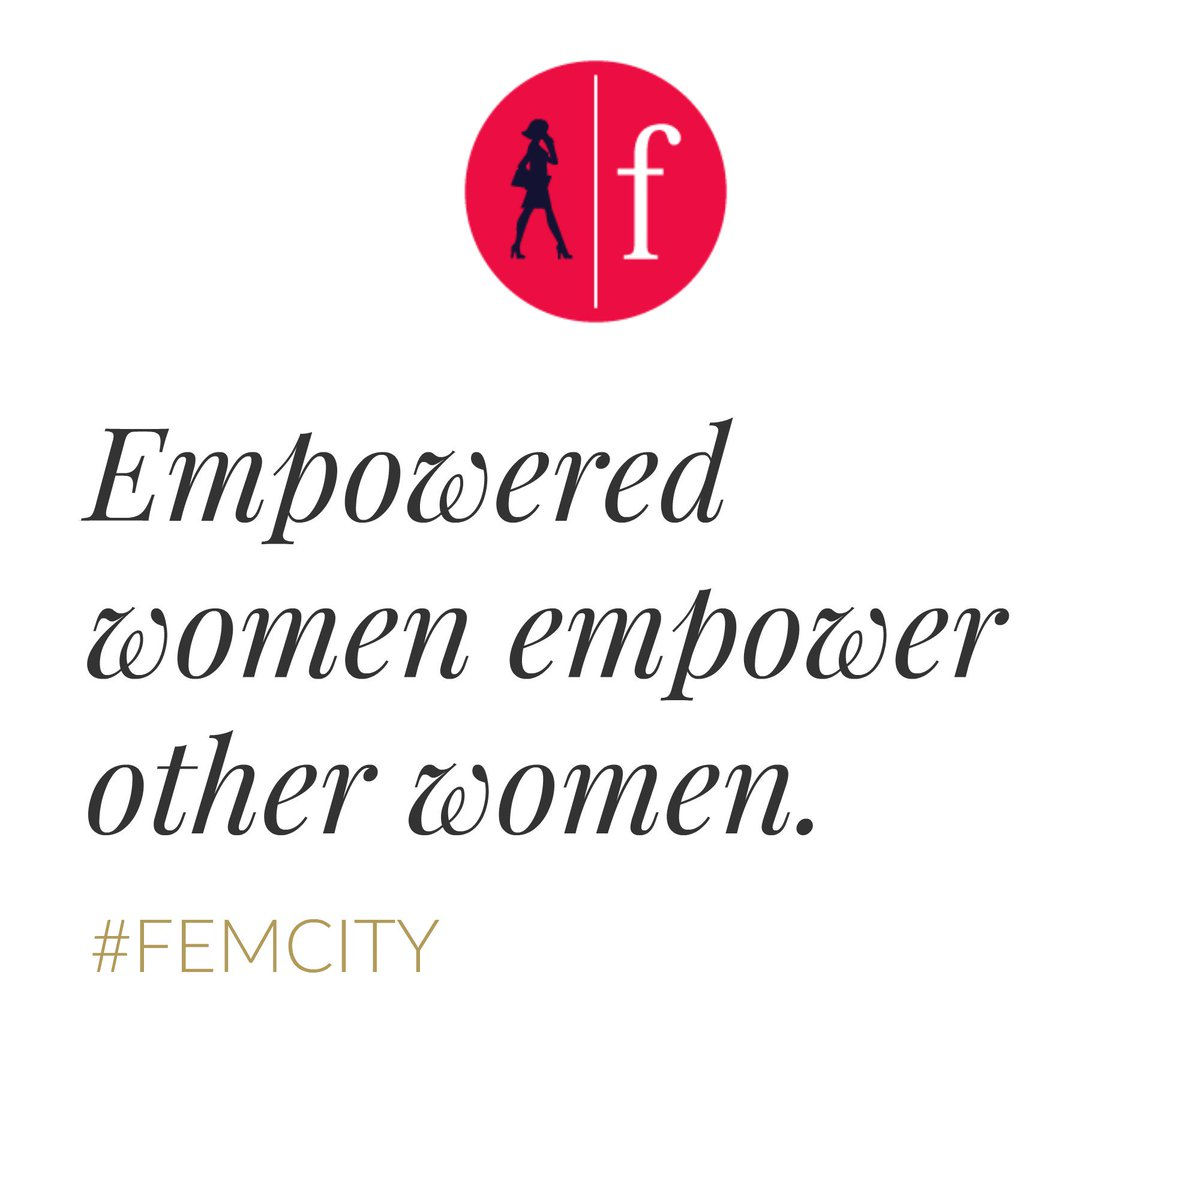 #femcity #empowerment #businessforyoursoul https://t.co/ARzOJi1Bn2